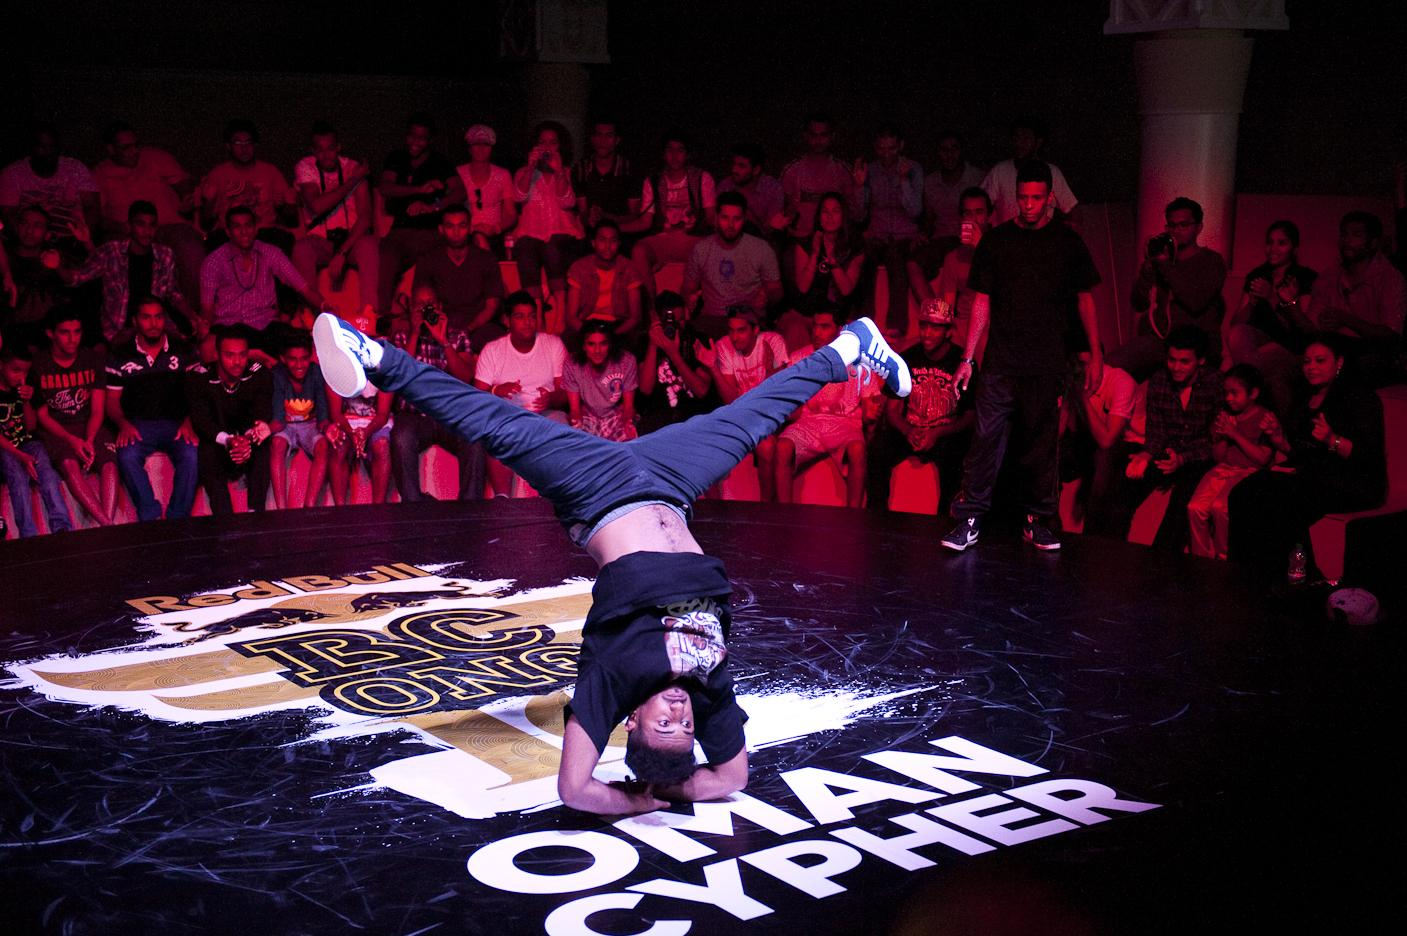 mastering the break dancing moves Cardboard dance mats are used in the break dance tradition breakdance originated on the streets where artists would use old cardboard boxes when dancing.